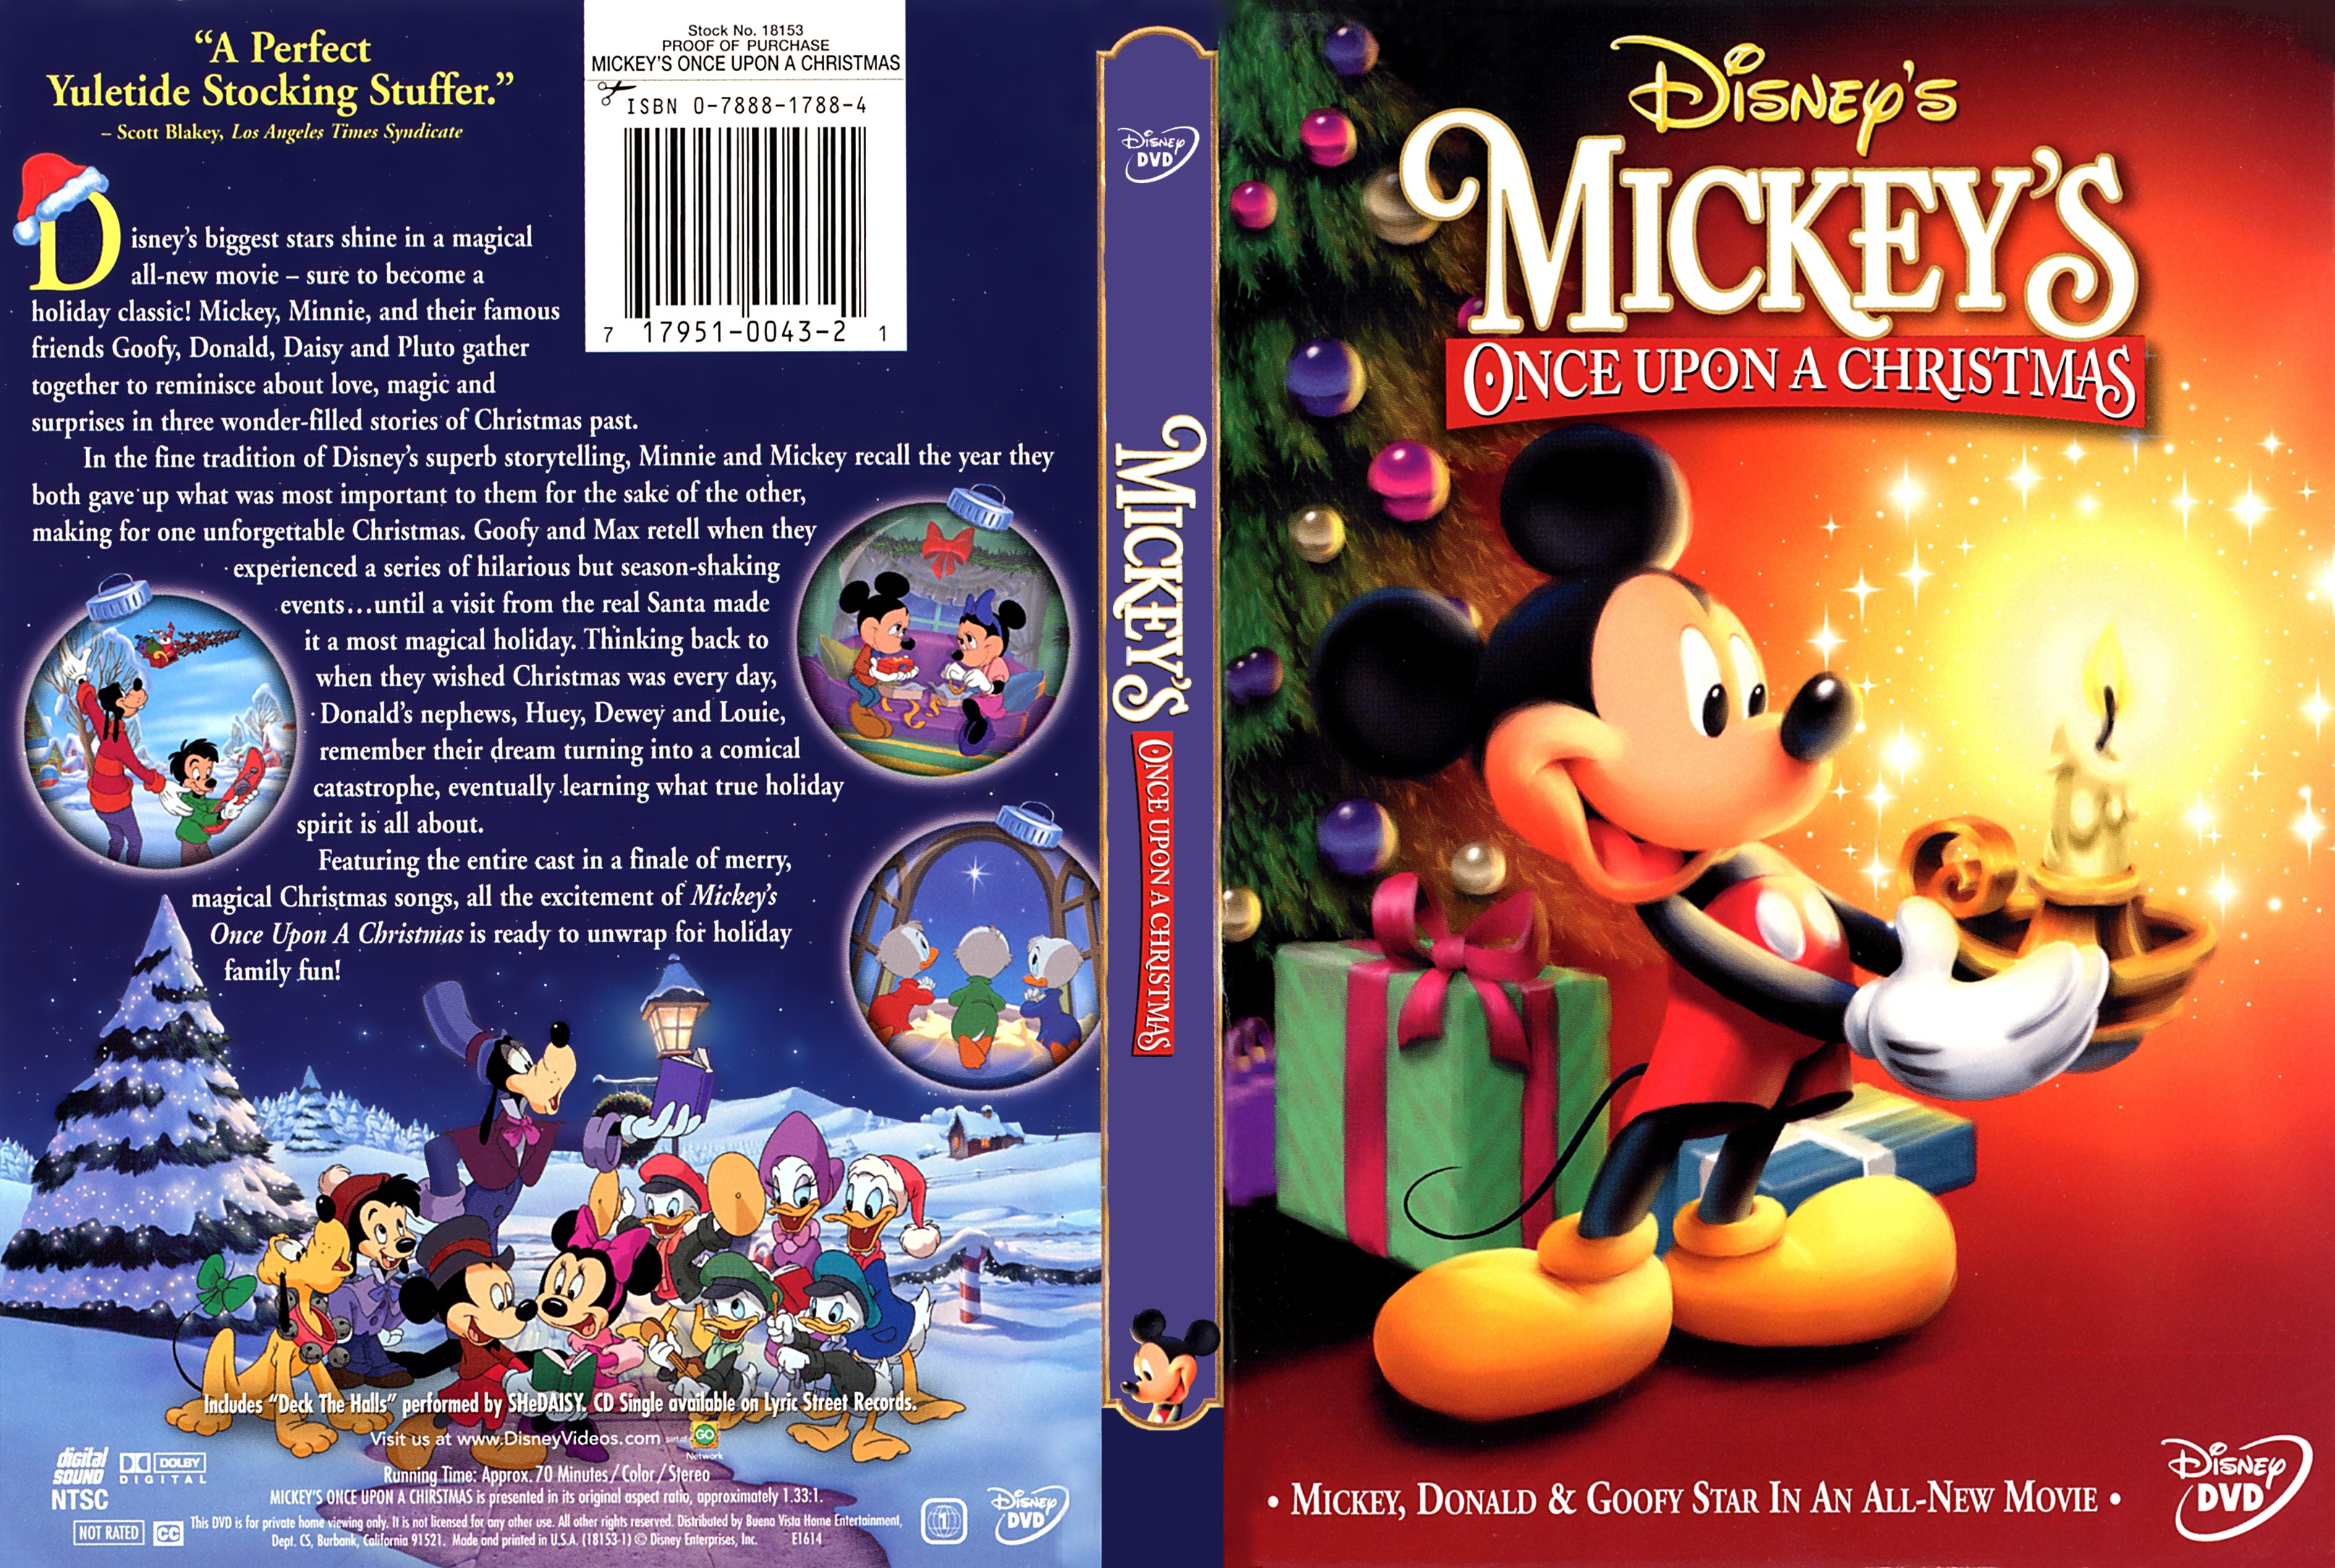 click here for full size image - Once Upon A Christmas Full Movie